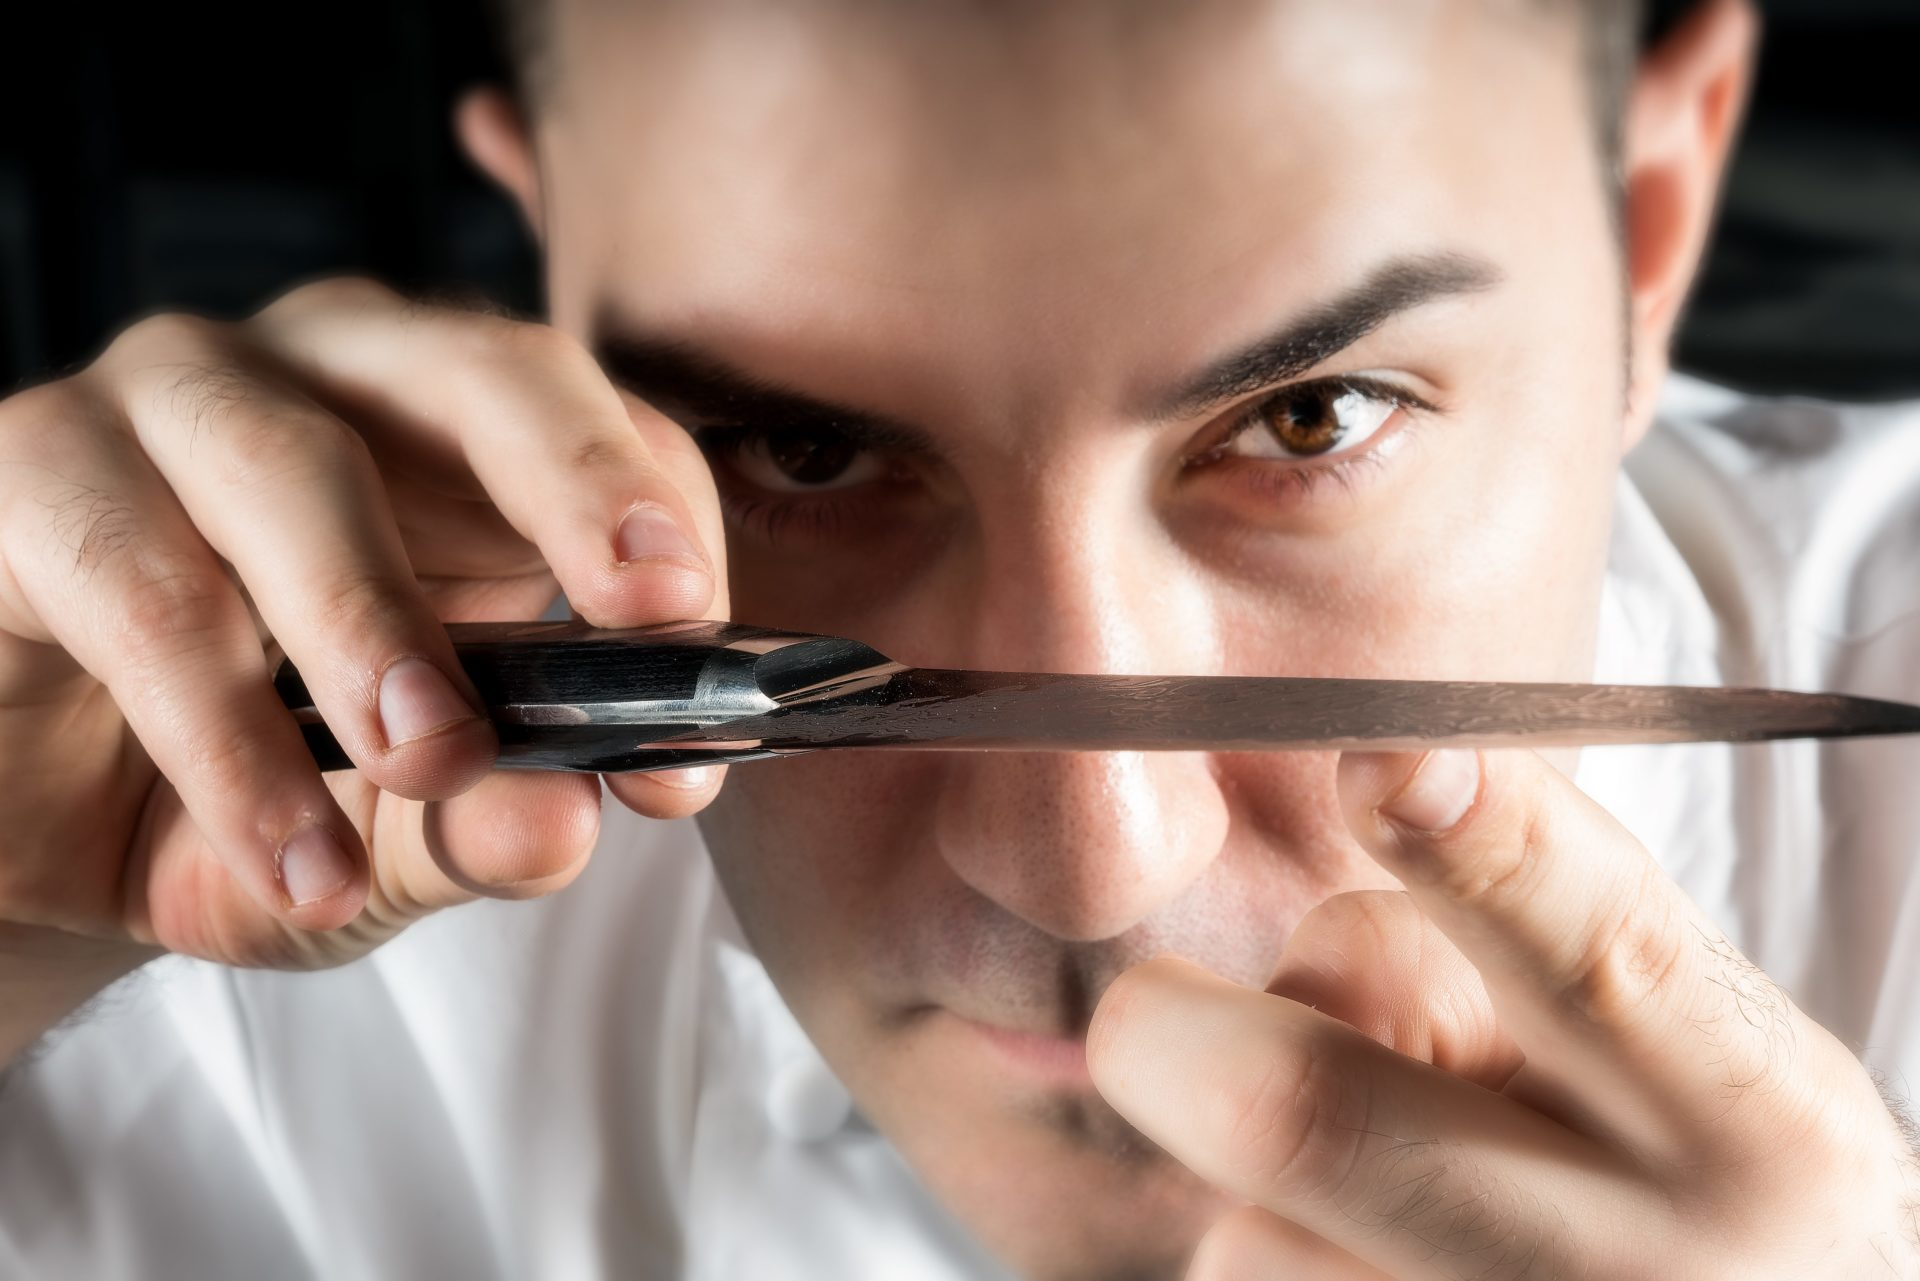 Fabrizio Fiorani, Asia's Best Pastry Chef 2019, Tells Us About